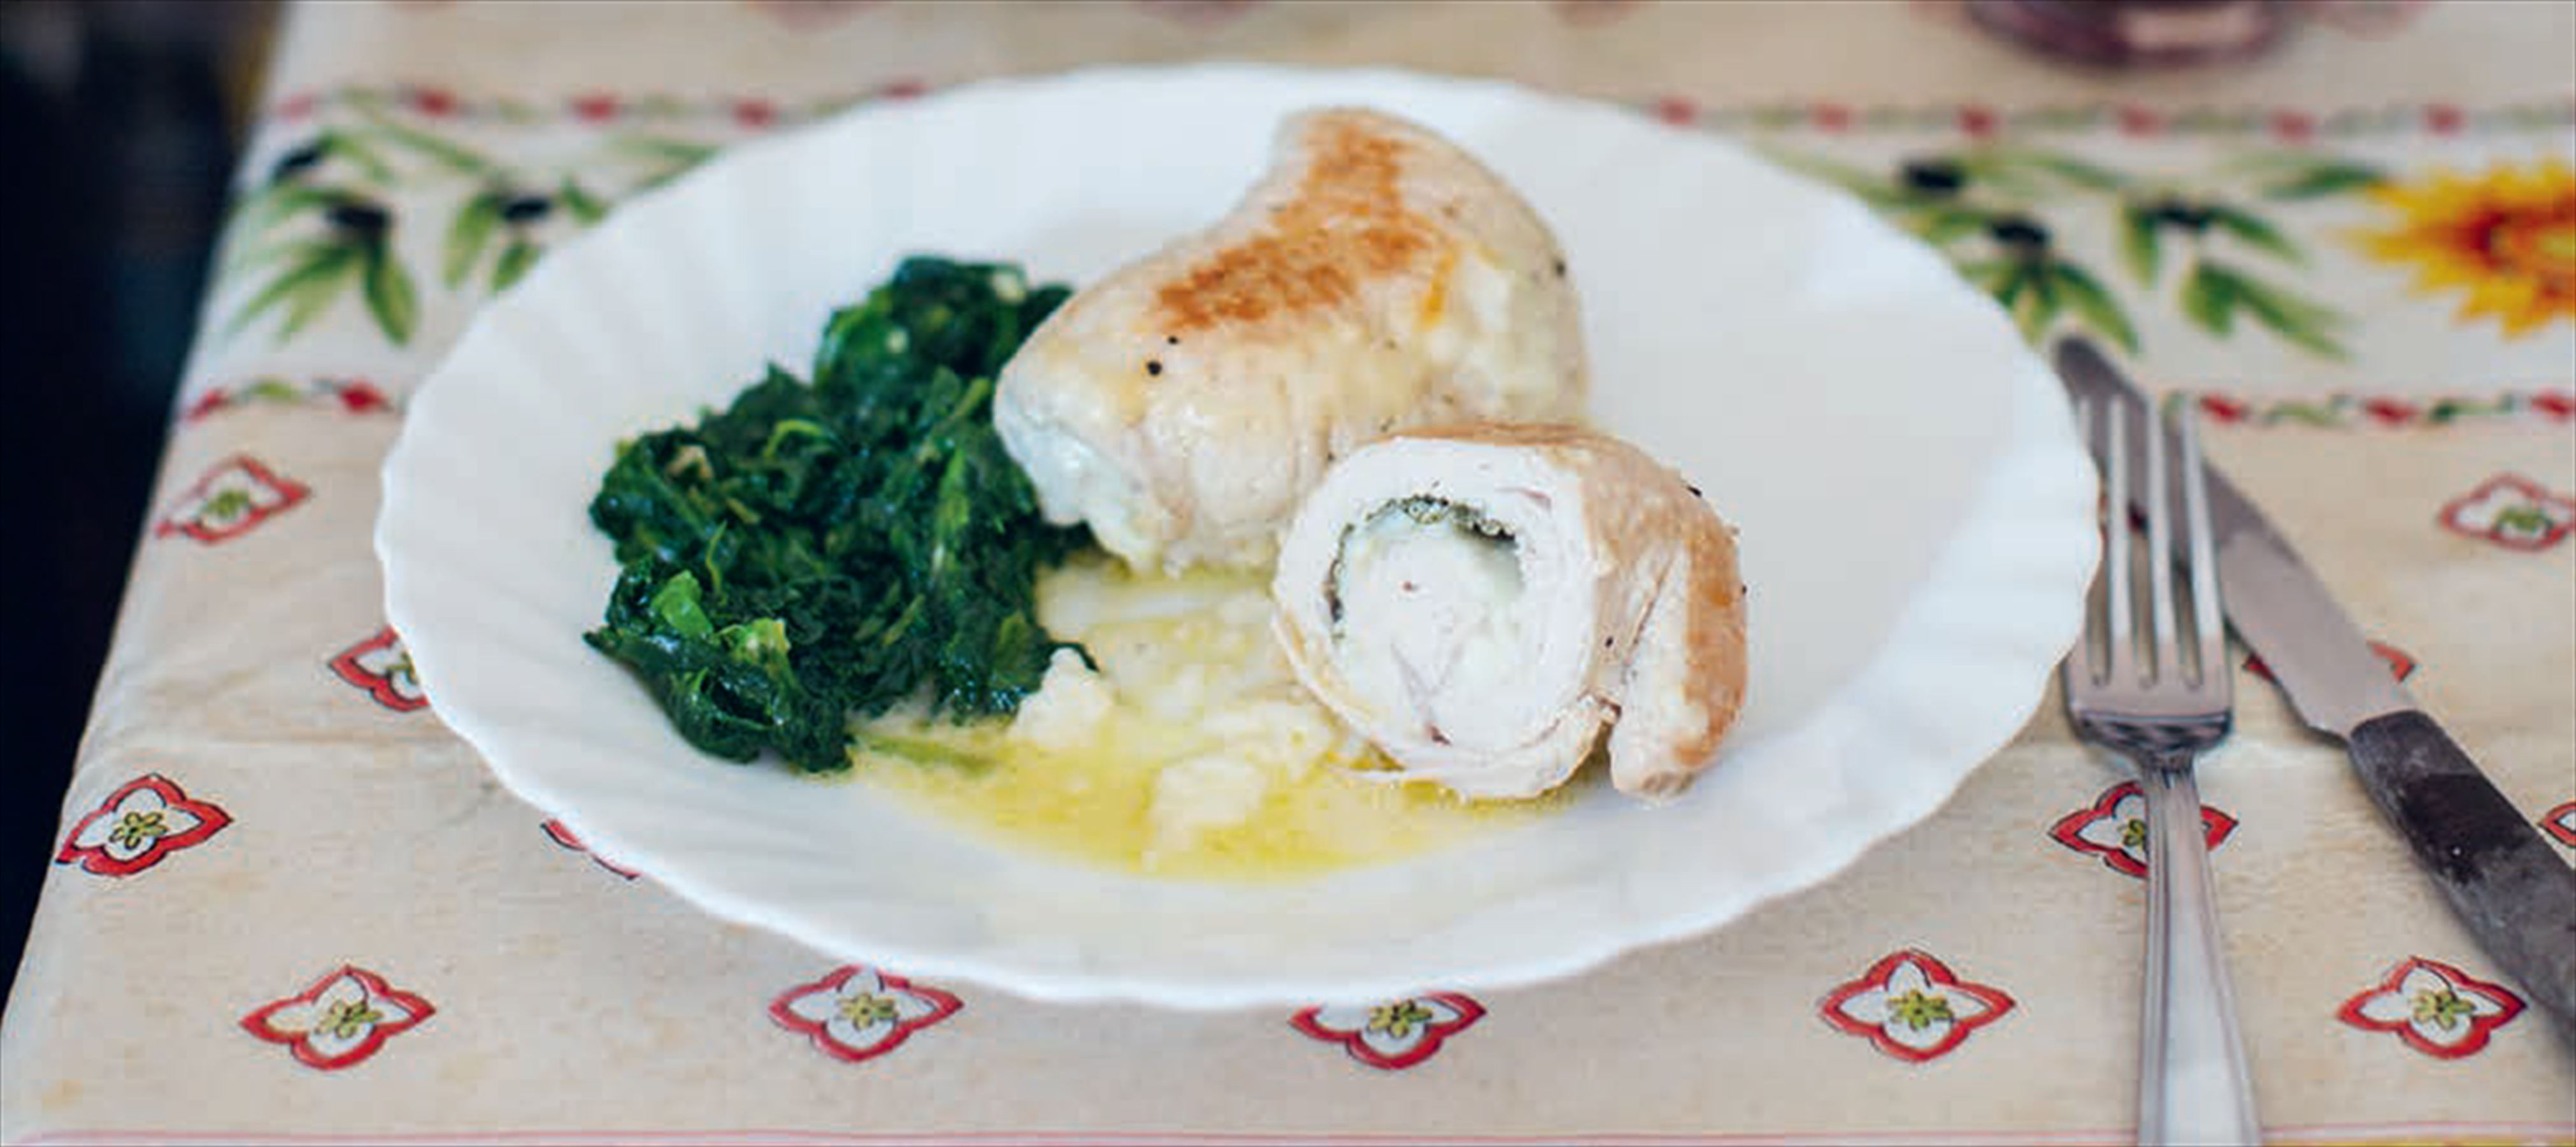 Turkey breast stuffed with pecorino & sage alla Livia